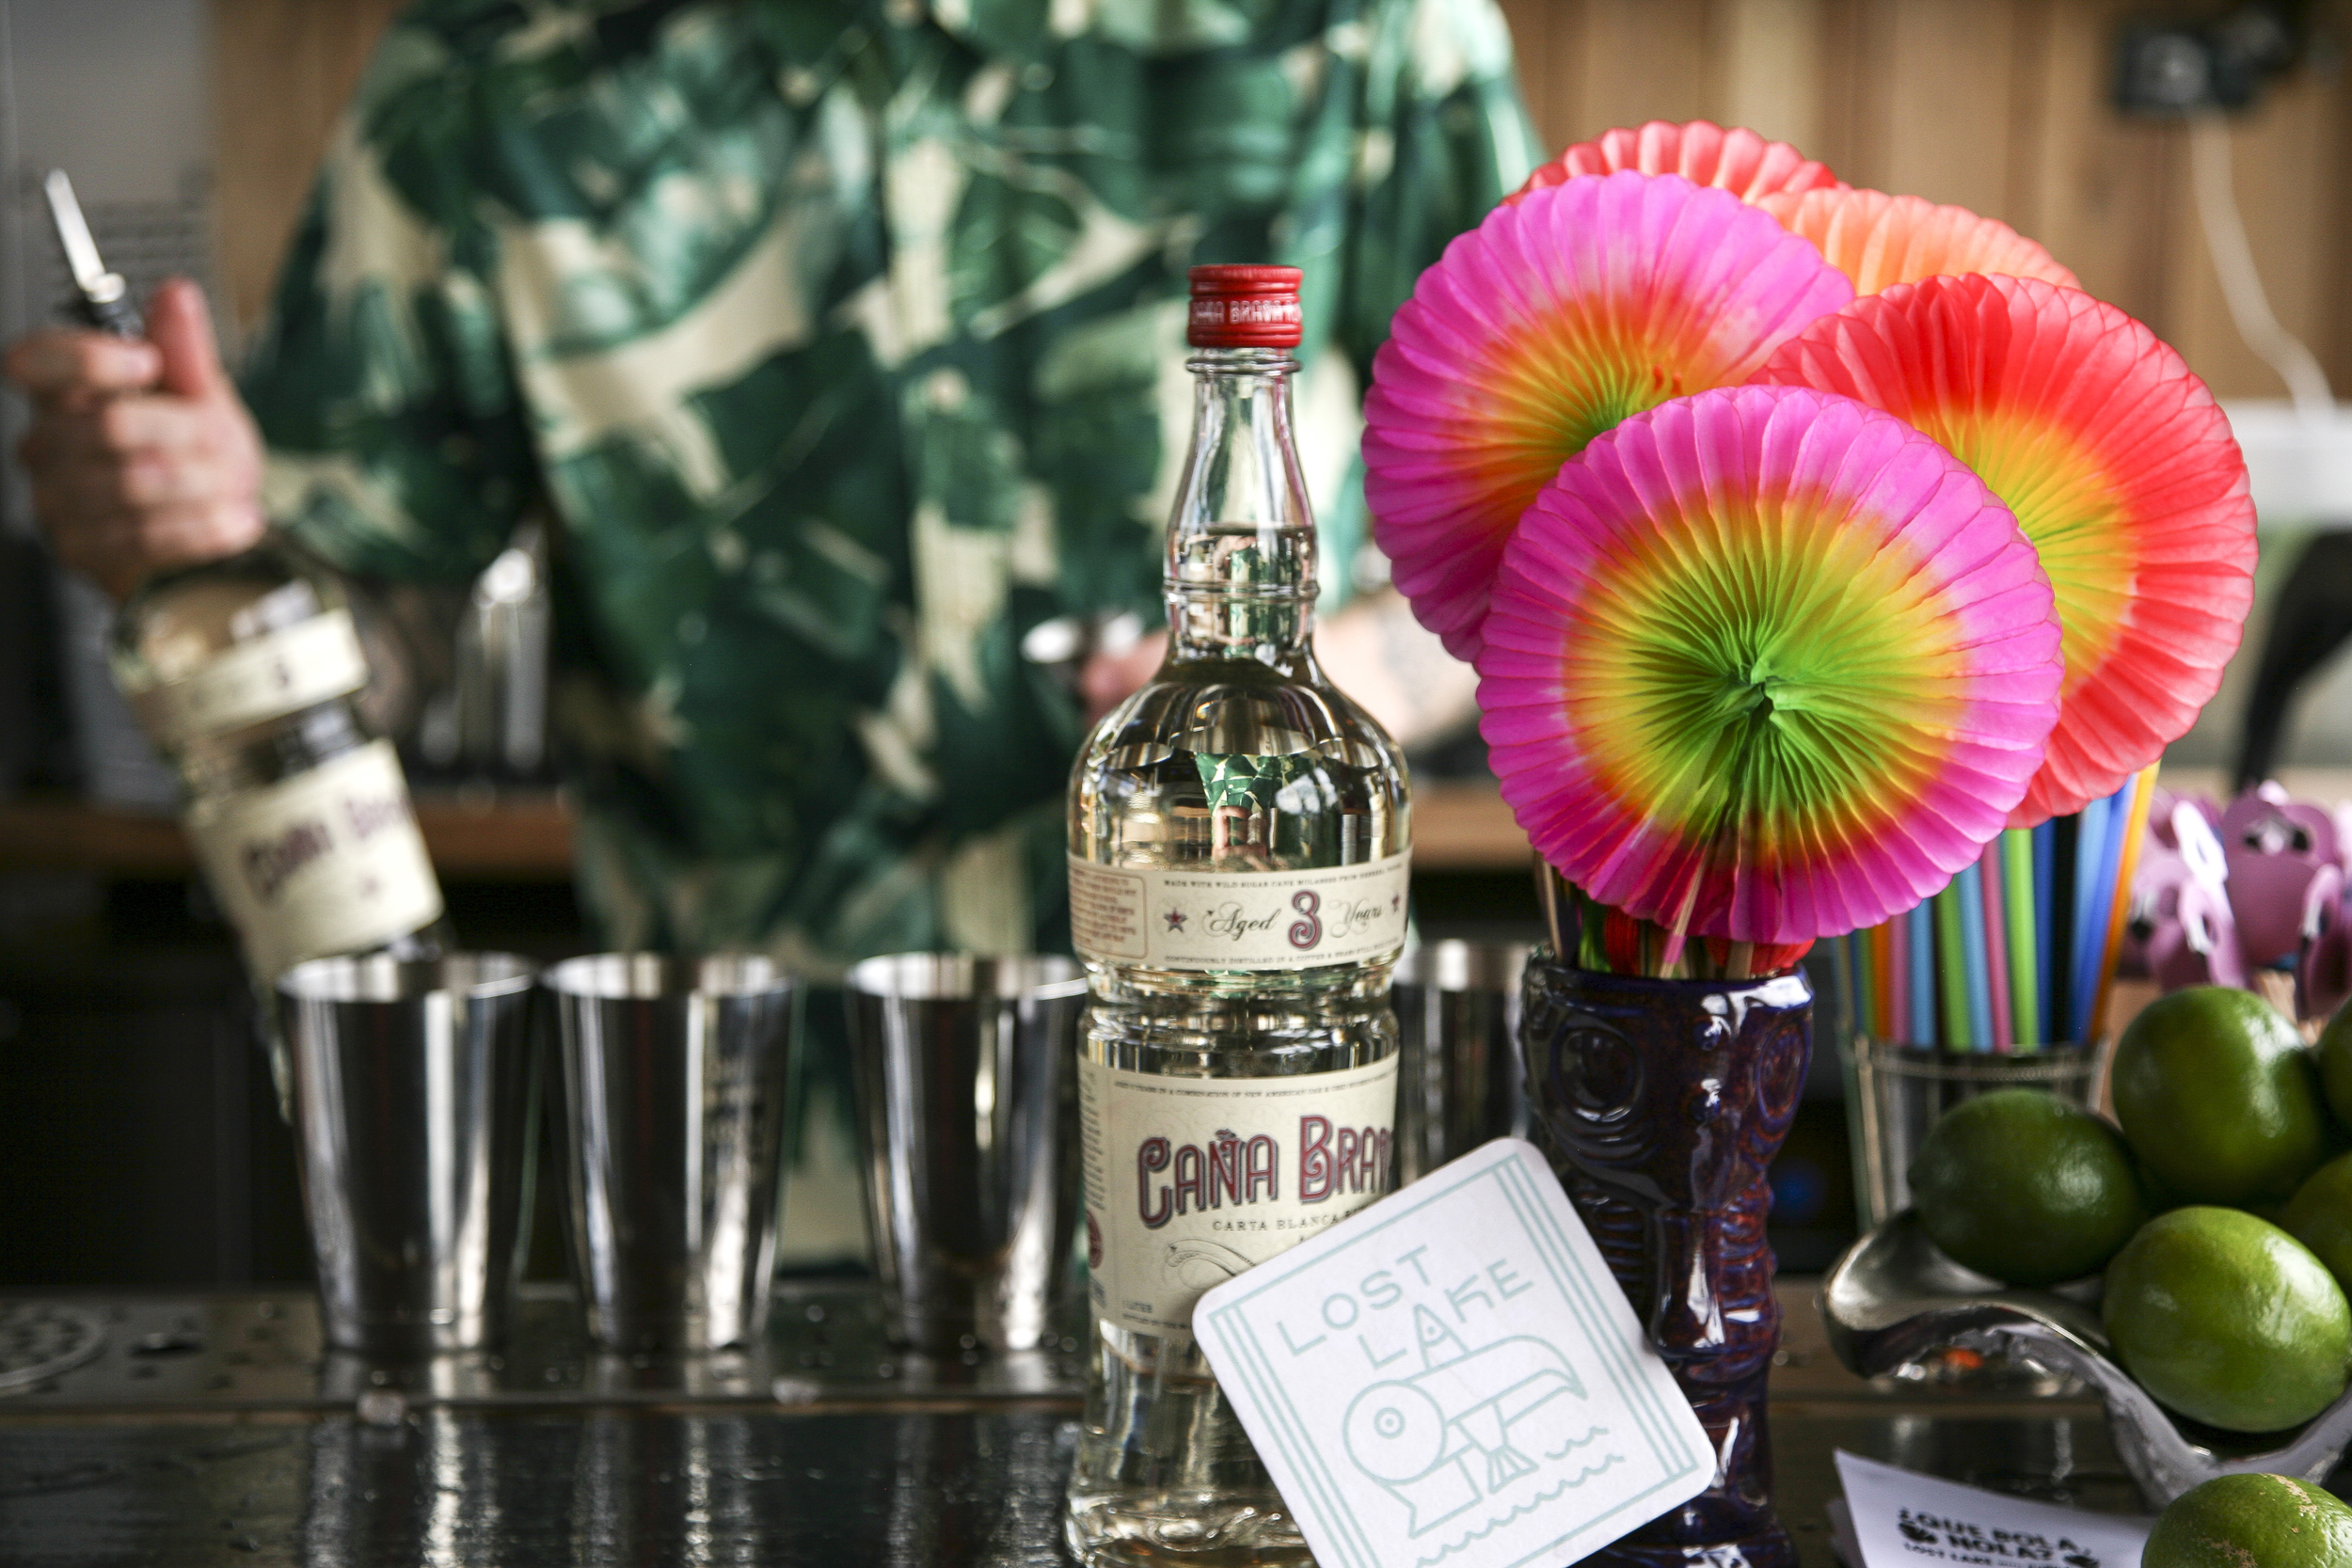 Cana Brava Rum Bar Setup 2 Photo Credit Angelina Melody Photography.jpg